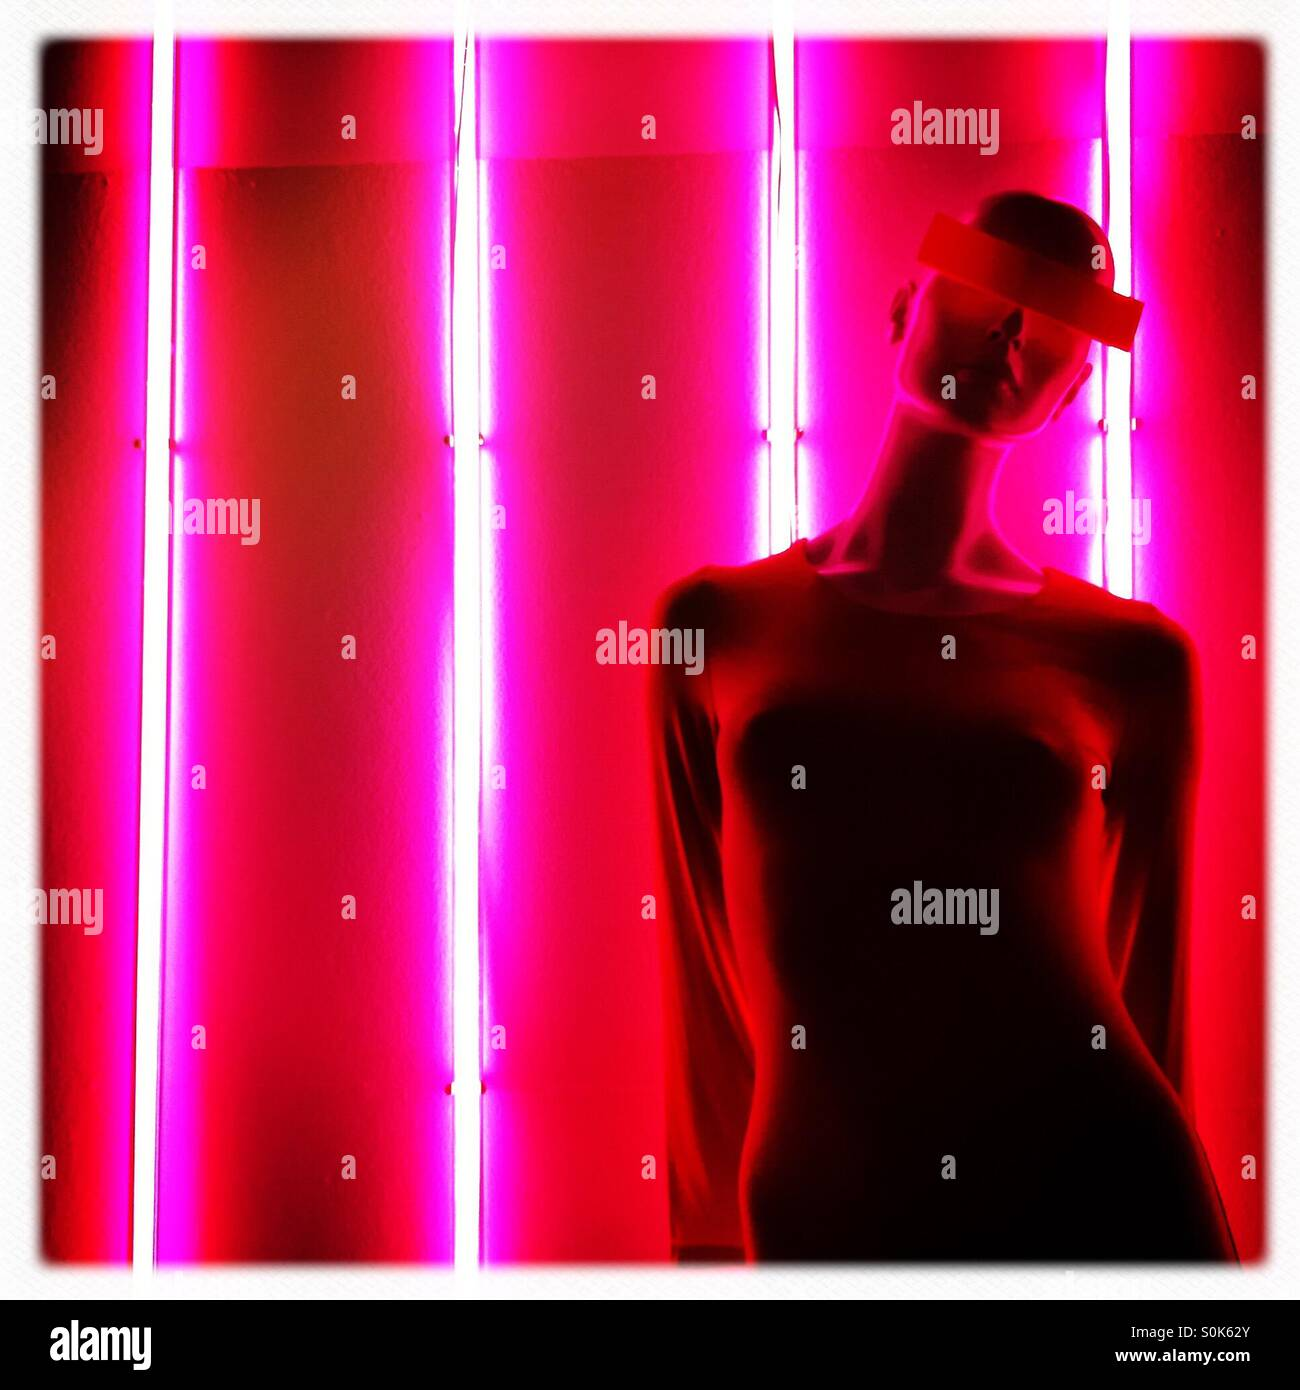 Neon lights and mannequin - Stock Image